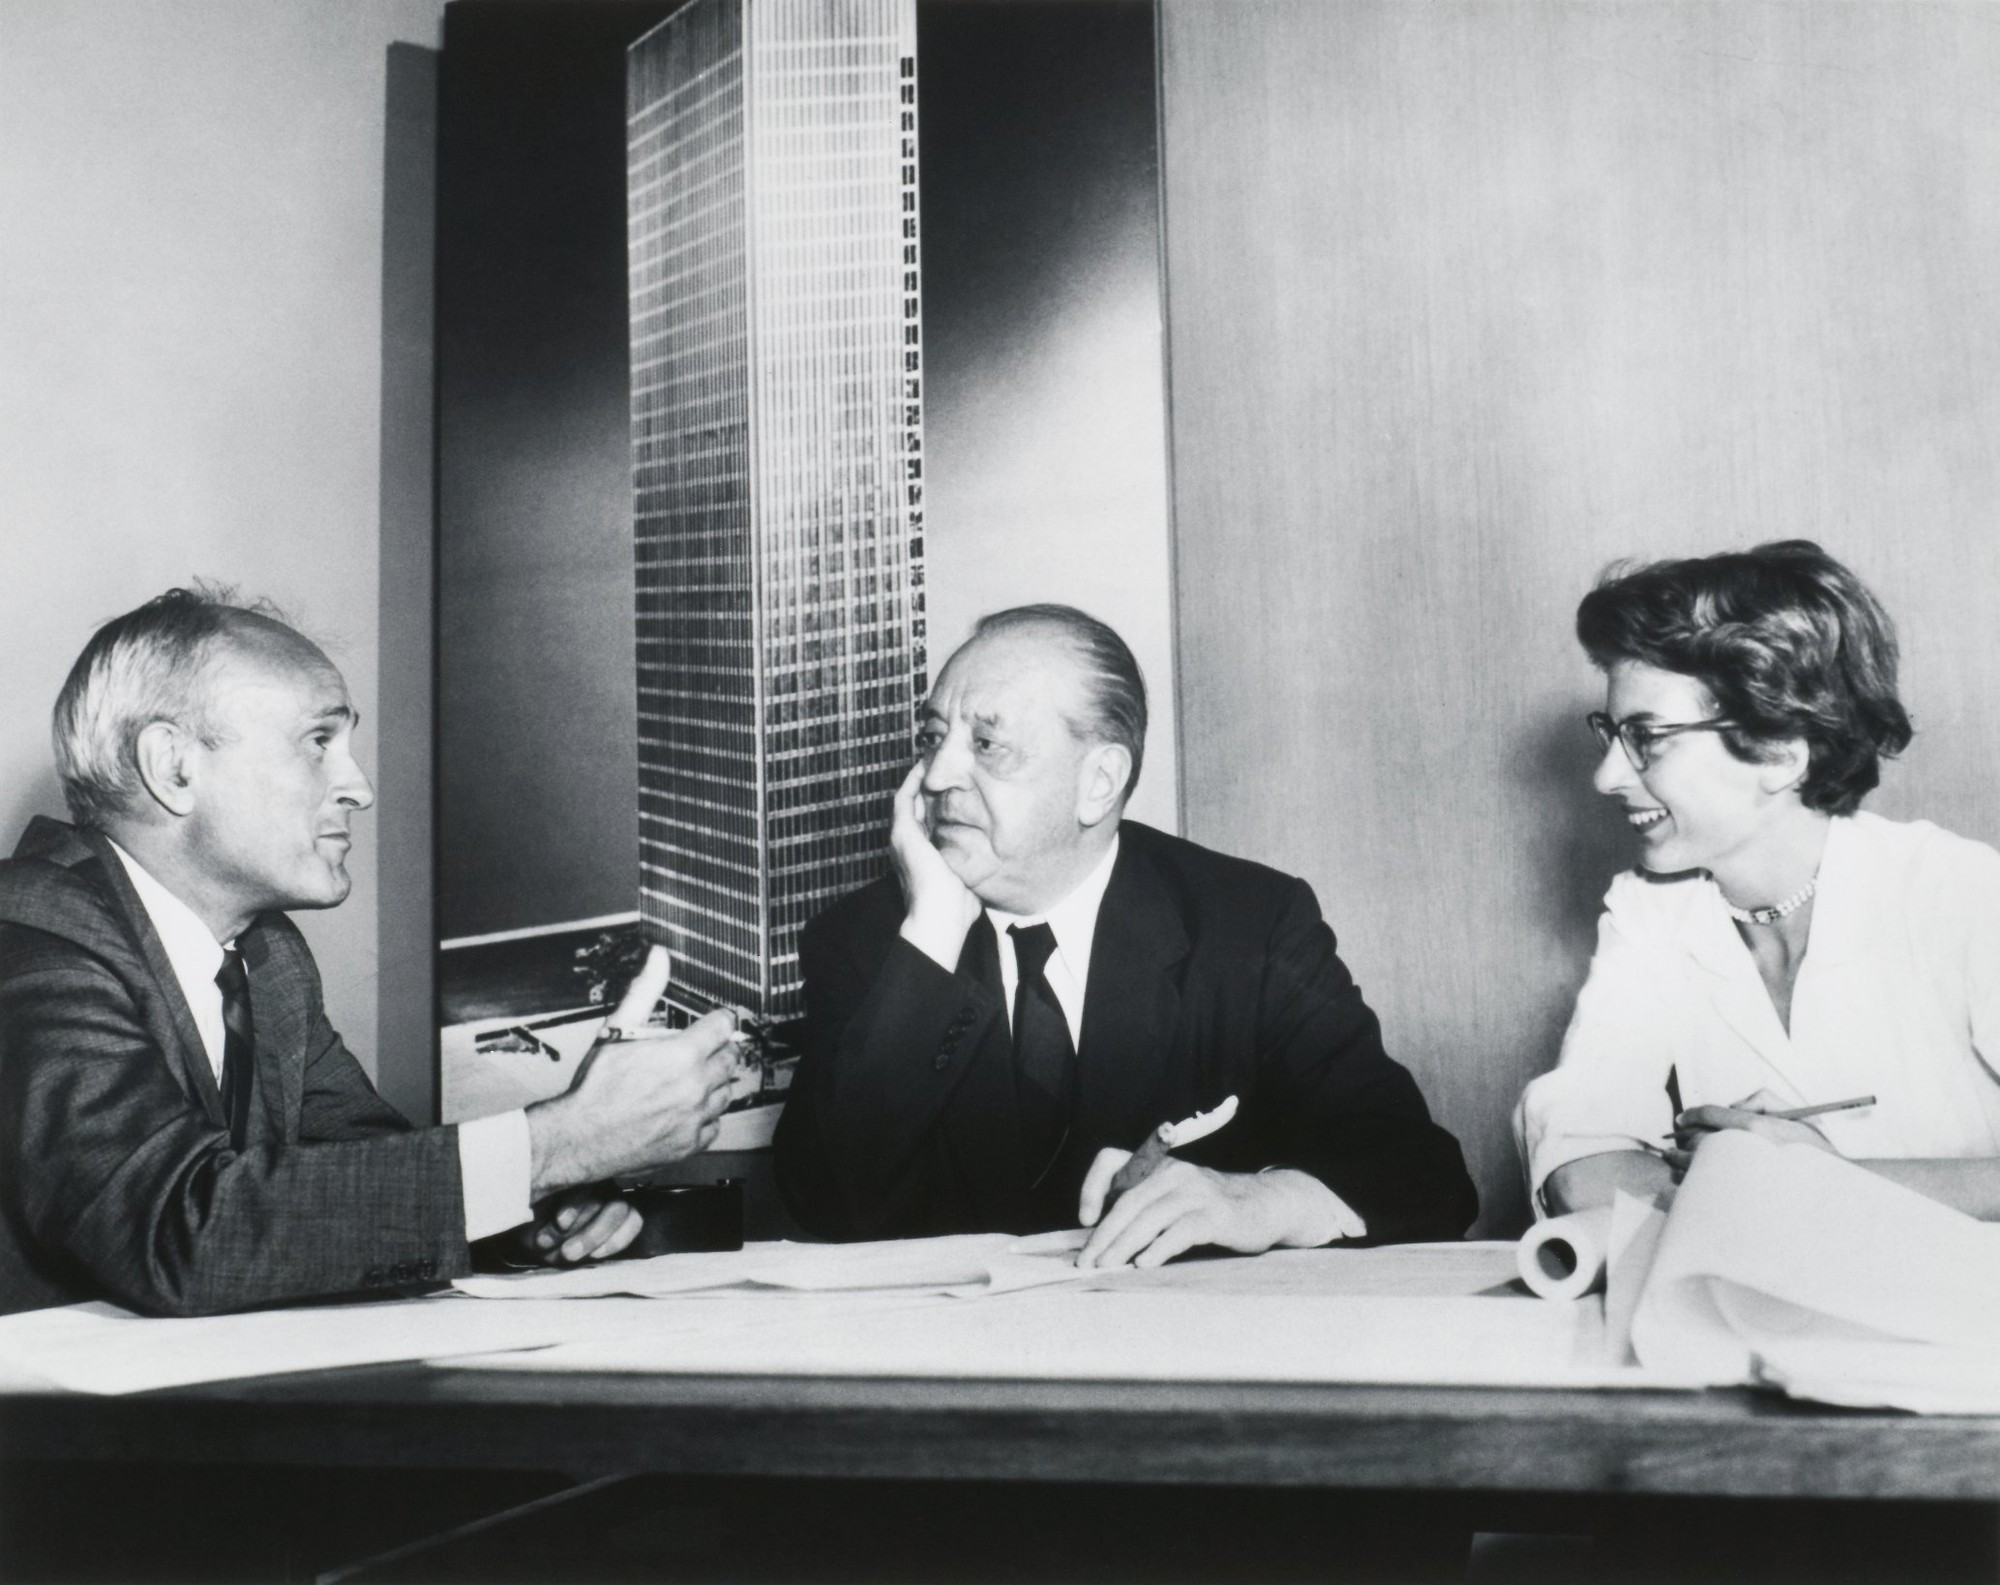 Phyllis Lambert to Receive Golden Lion for Lifetime Achievement at Venice Biennale , Philip Johnson, Ludwig Mies van der Rohe, and Phyllis Lambert in front of an image of the model   for the Seagram building, New York, 1955. Gelatin silver print, 7½ × 9⅜ in. Photographer unknown.   Fonds Phyllis Lambert, Canadian Centre for Architecture, Montreal. Image © United Press International.